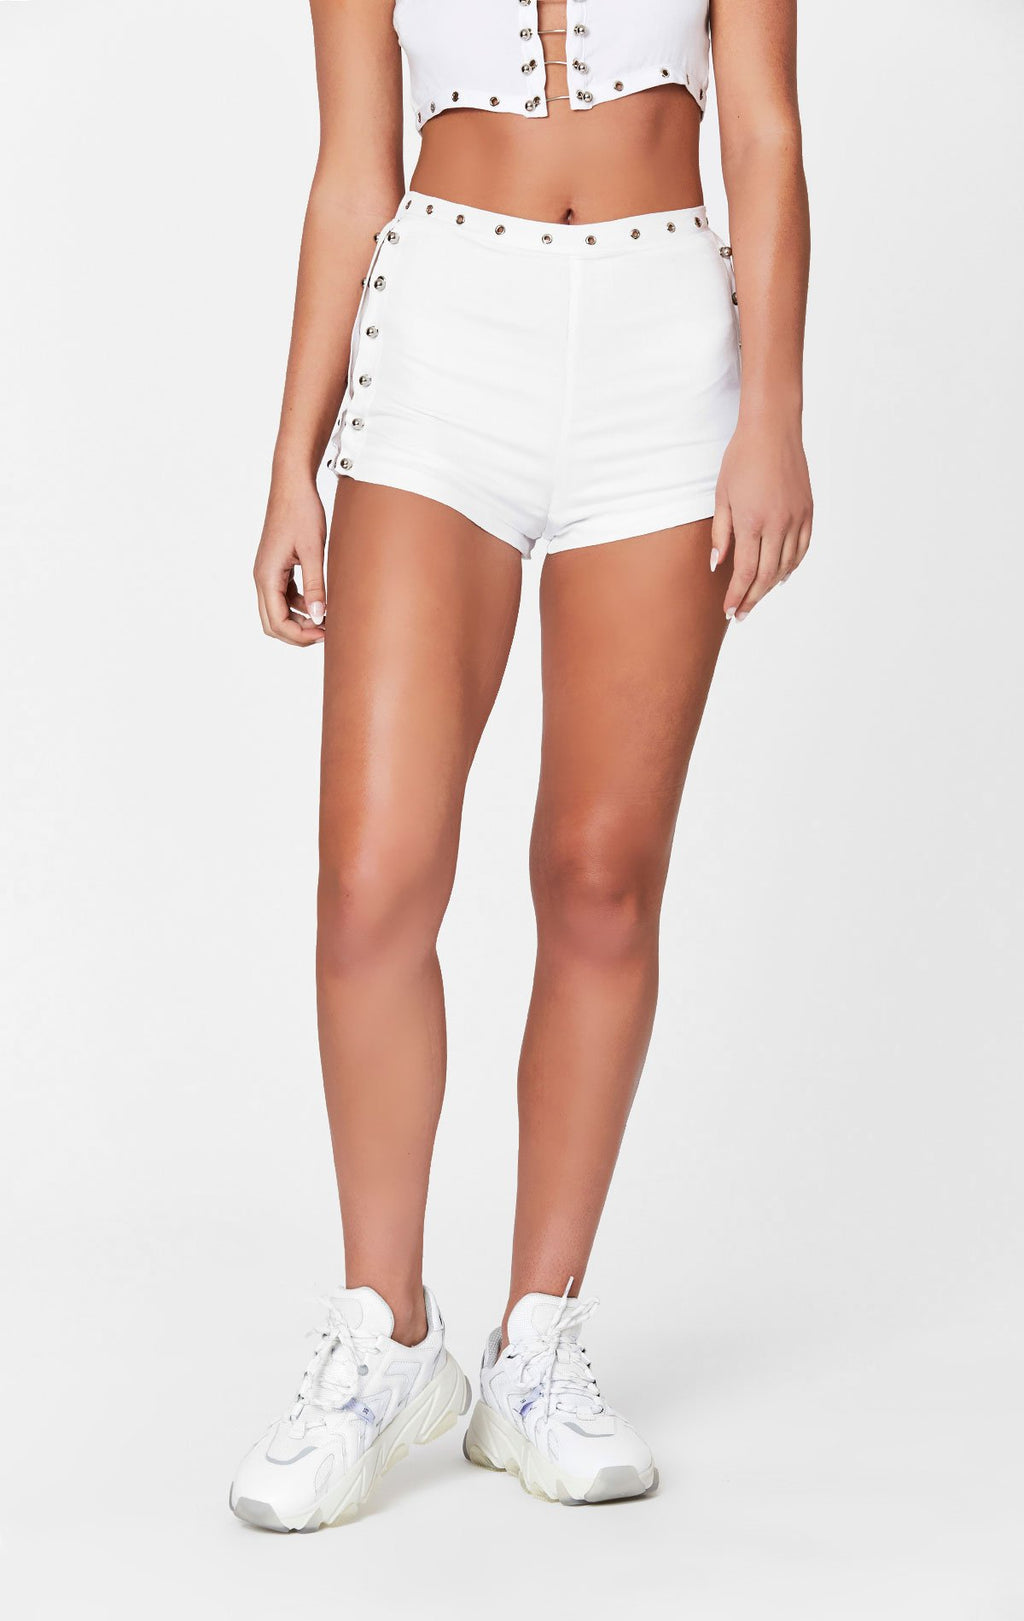 MILLAU BARBELL SHORTS CROP FRONT